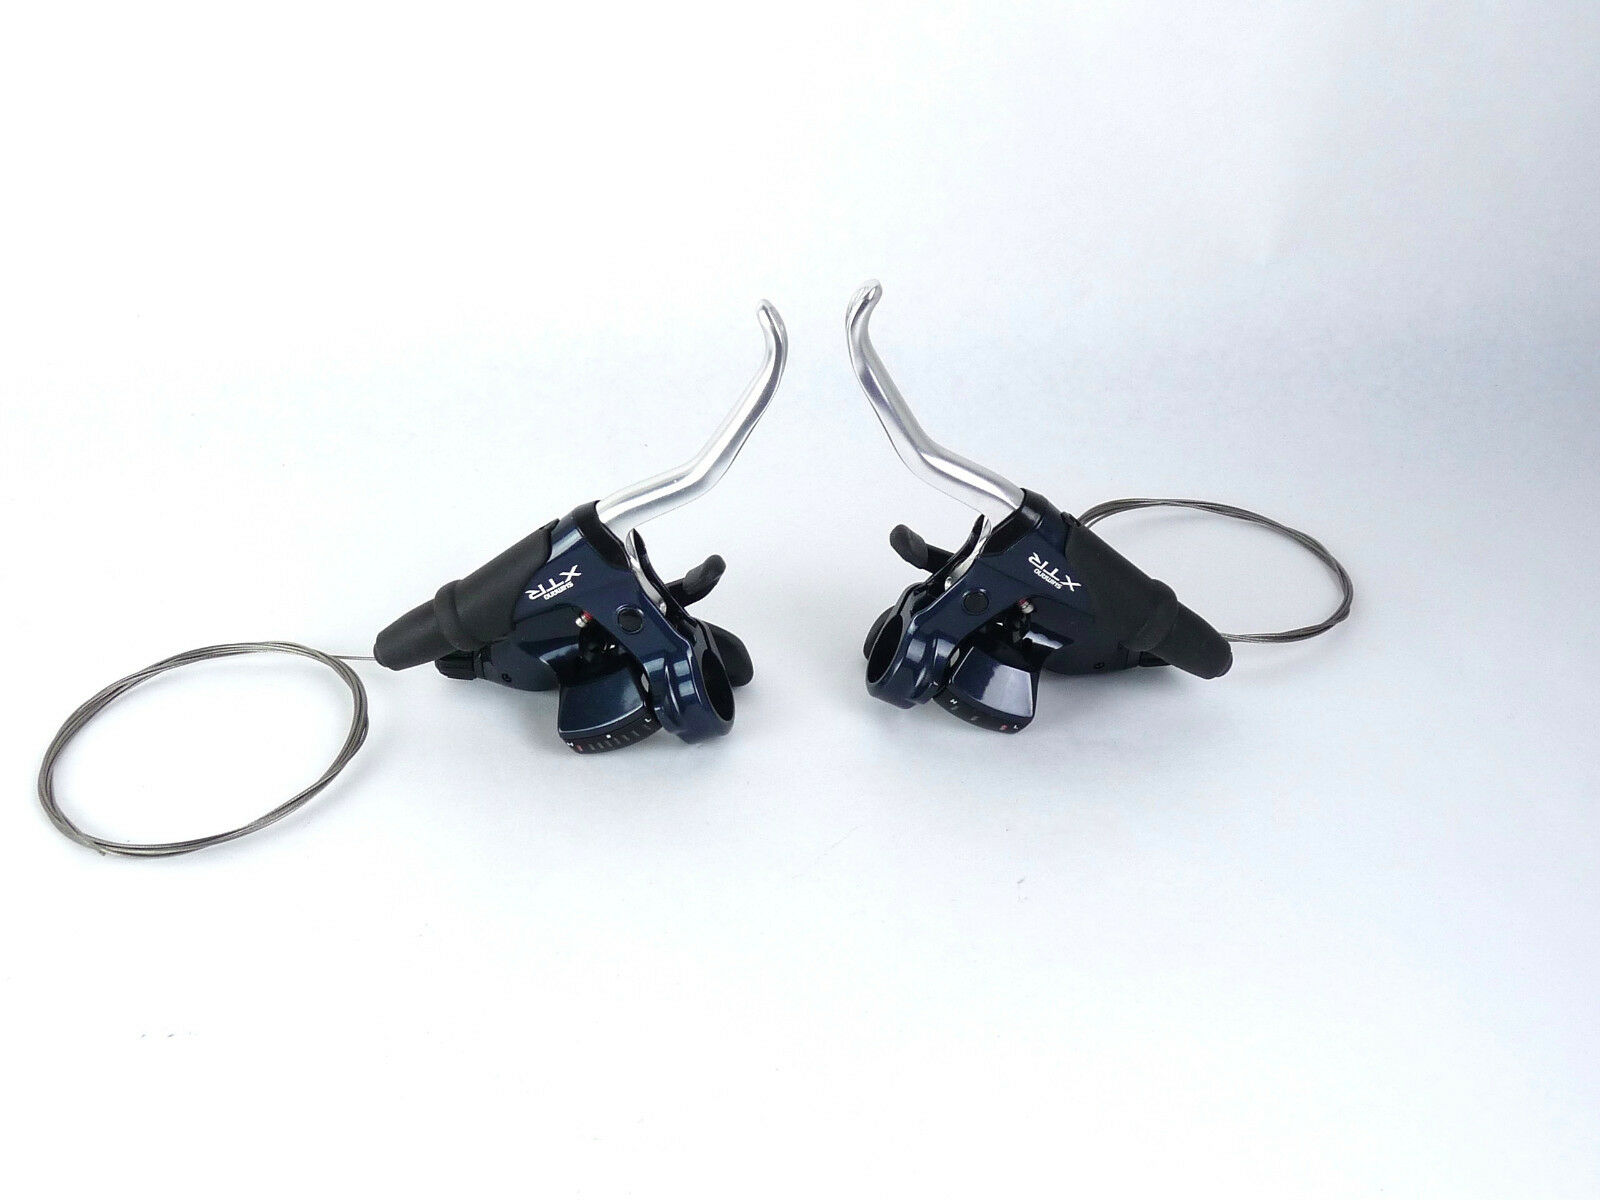 Shimano XTR M910 Shifters Rapidfire Brake Levers Vintage  MTB Bike 8 speed NOS  support wholesale retail